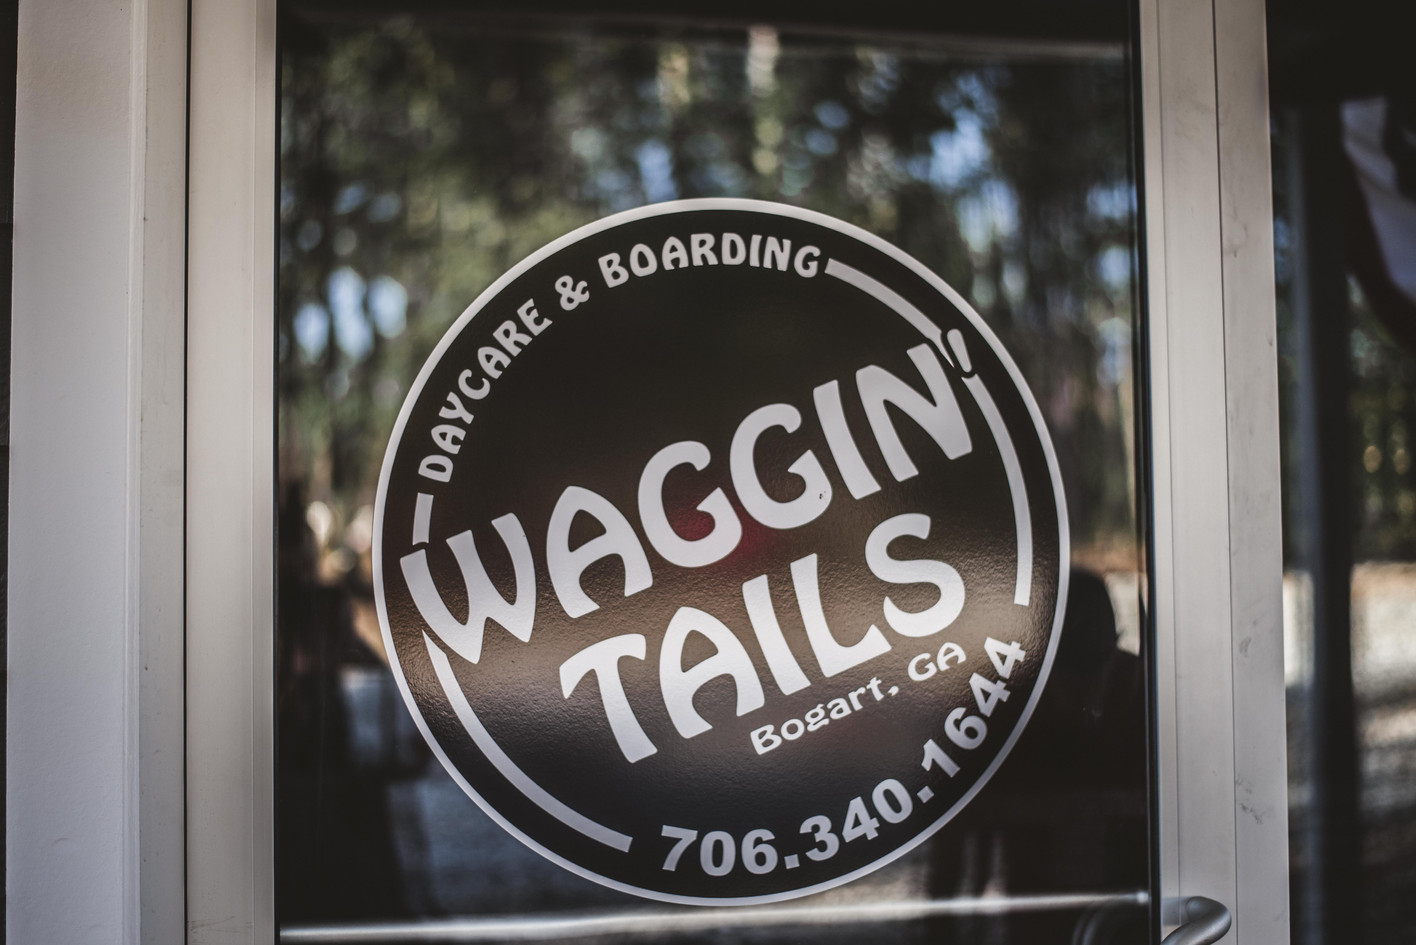 waggintails.acp-5.jpg